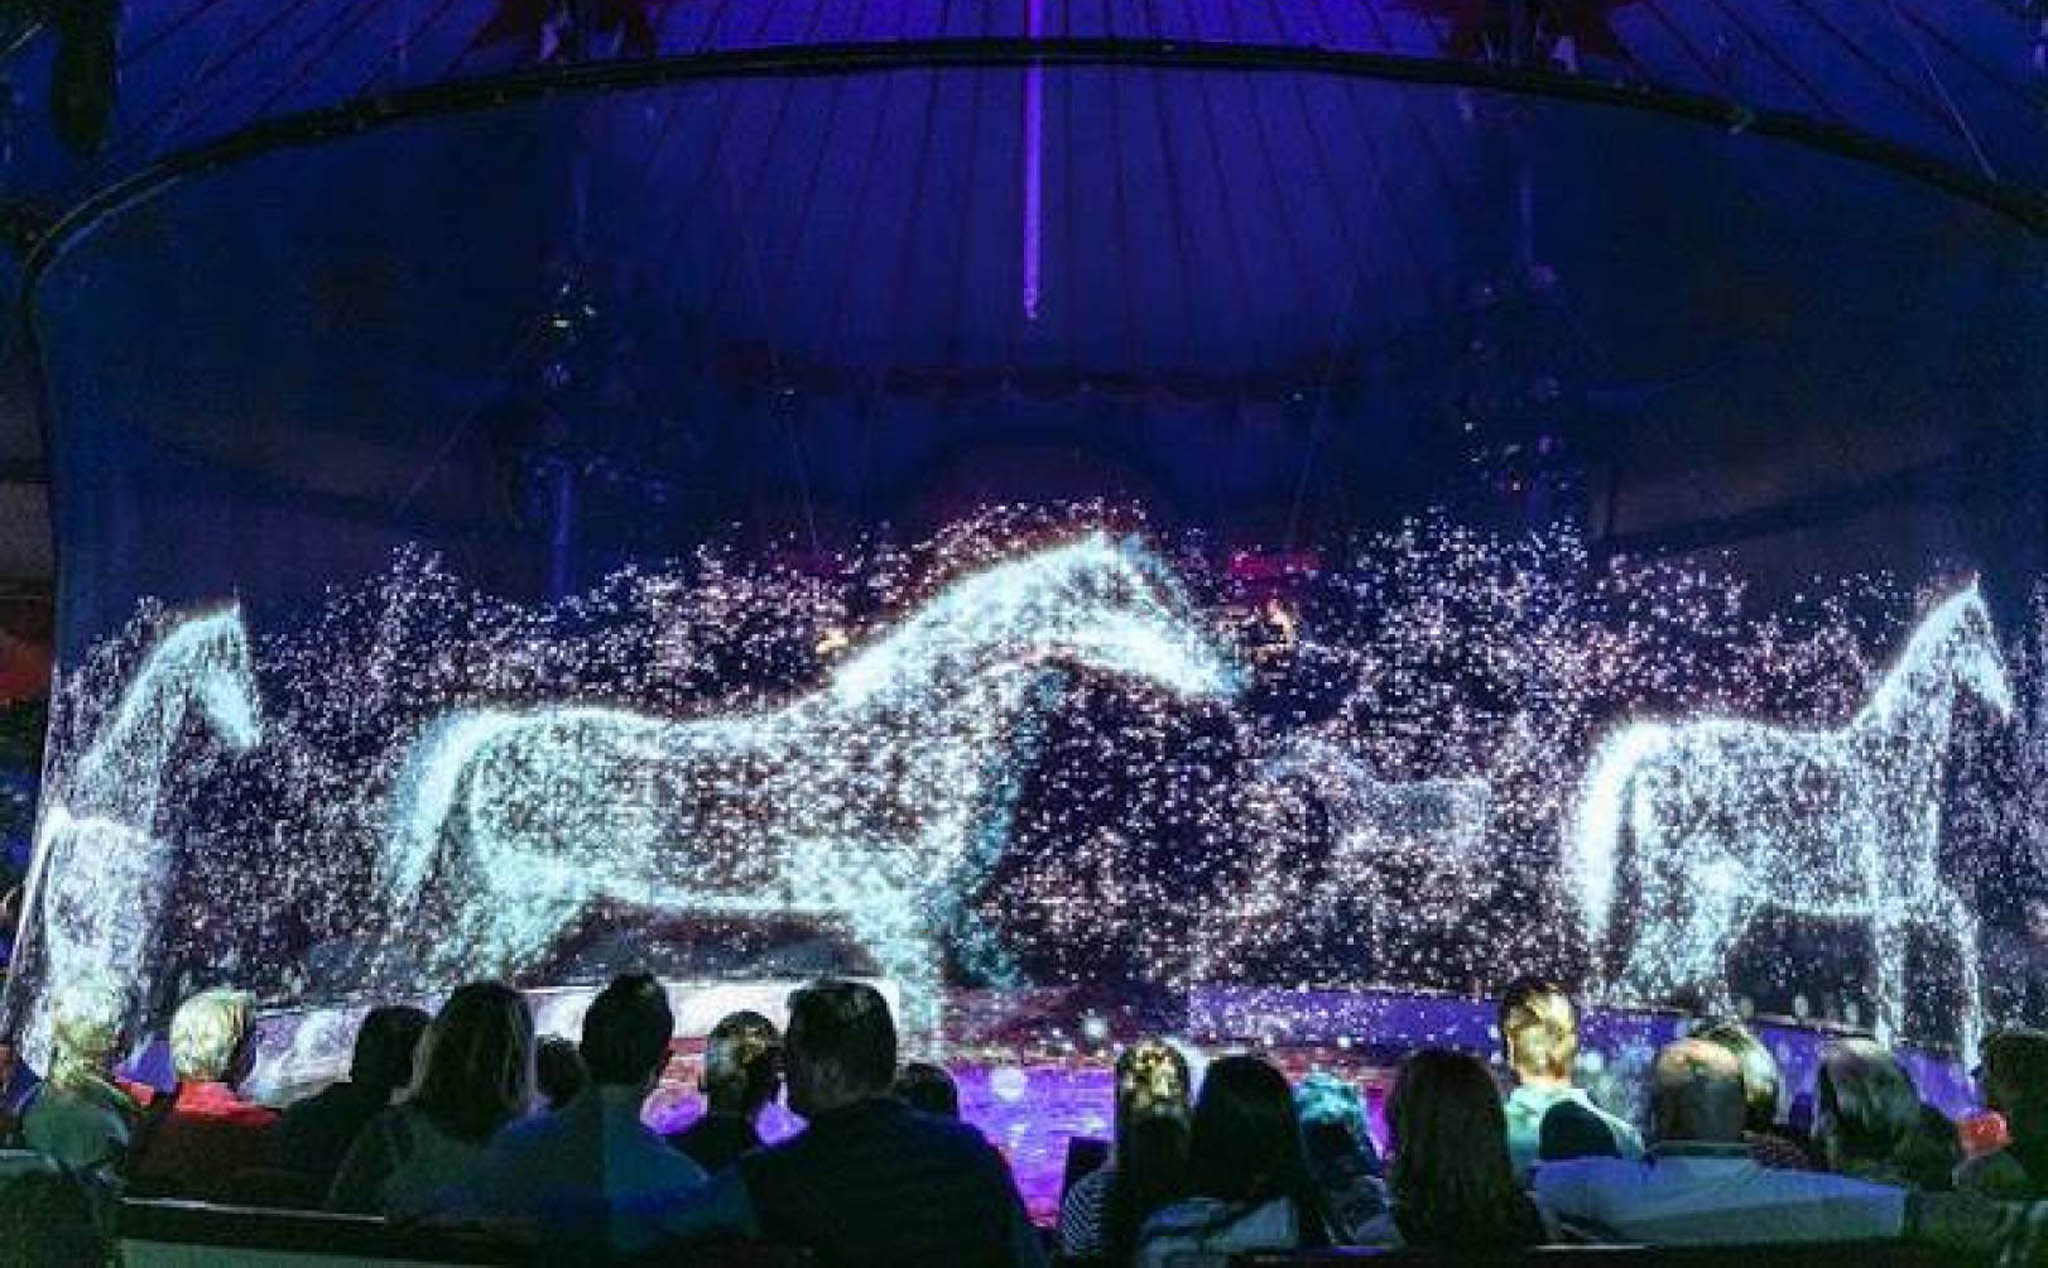 Against animal violence, the German circus turned into 3D hologram projection for the audience